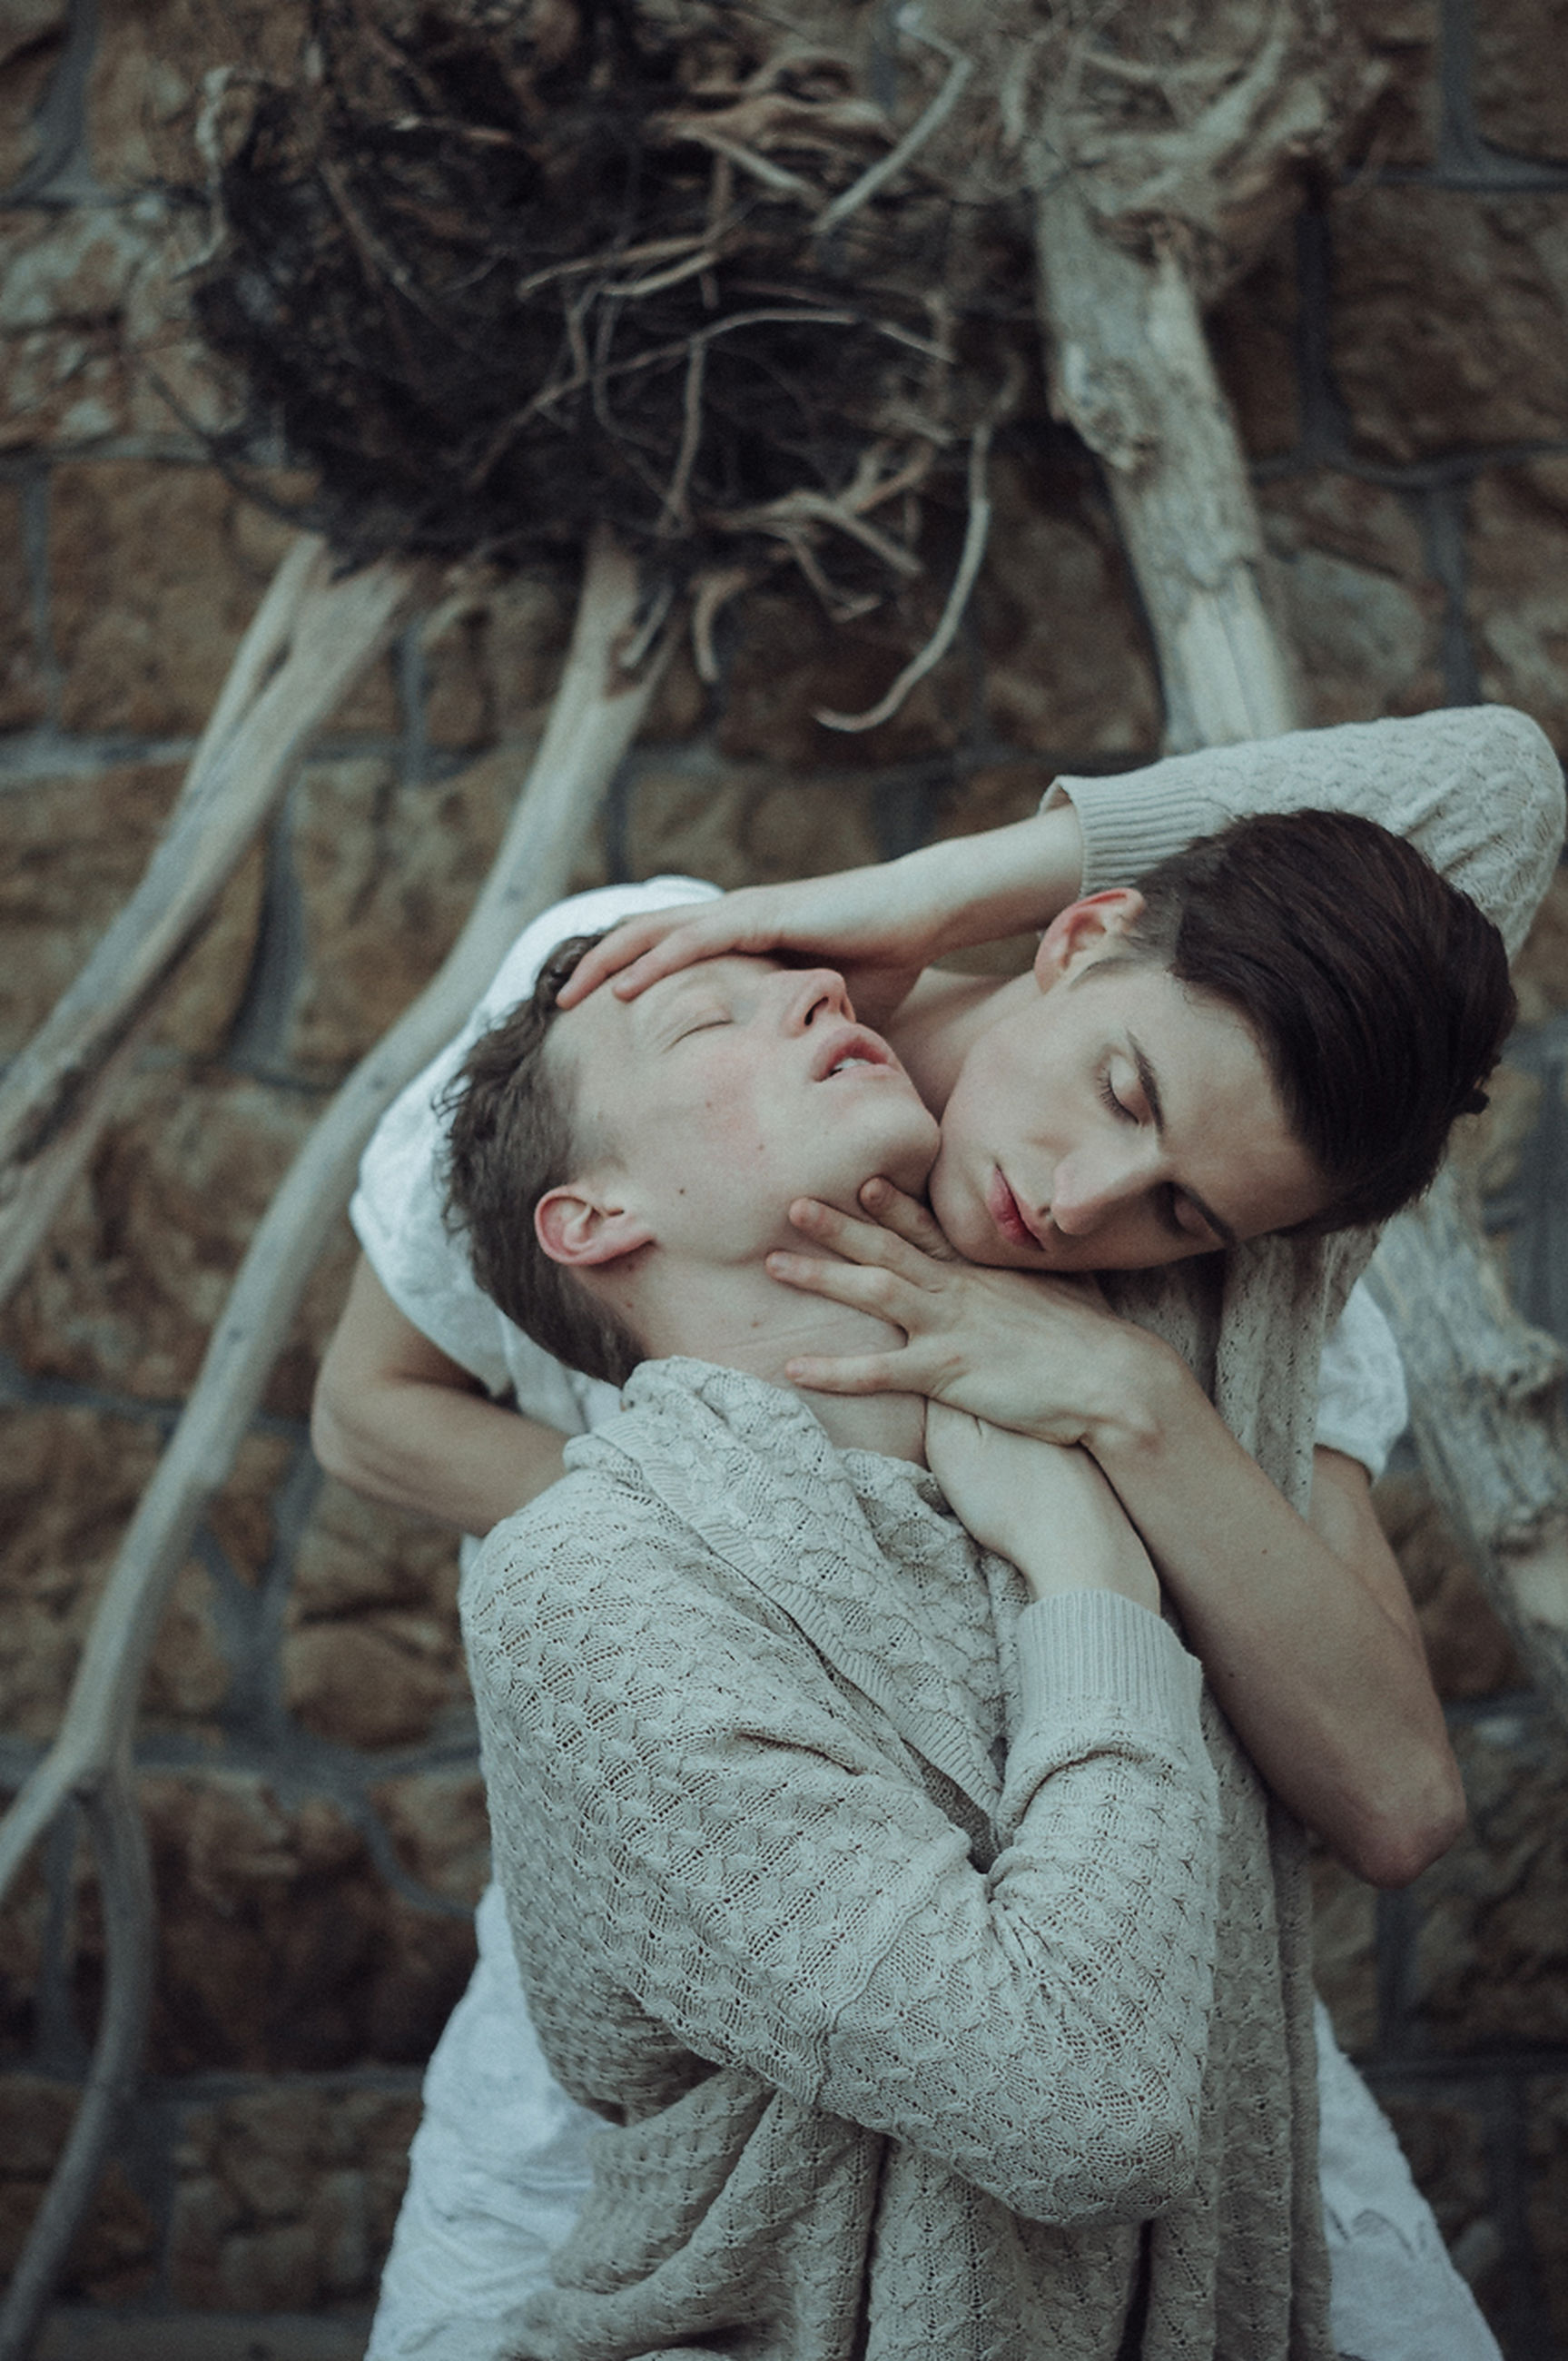 togetherness, two people, love, eyes closed, embracing, bonding, day, outdoors, happiness, affectionate, young women, smiling, leisure activity, real people, childhood, close-up, winter, portrait, tree, nature, young adult, beautiful woman, warm clothing, adult, people